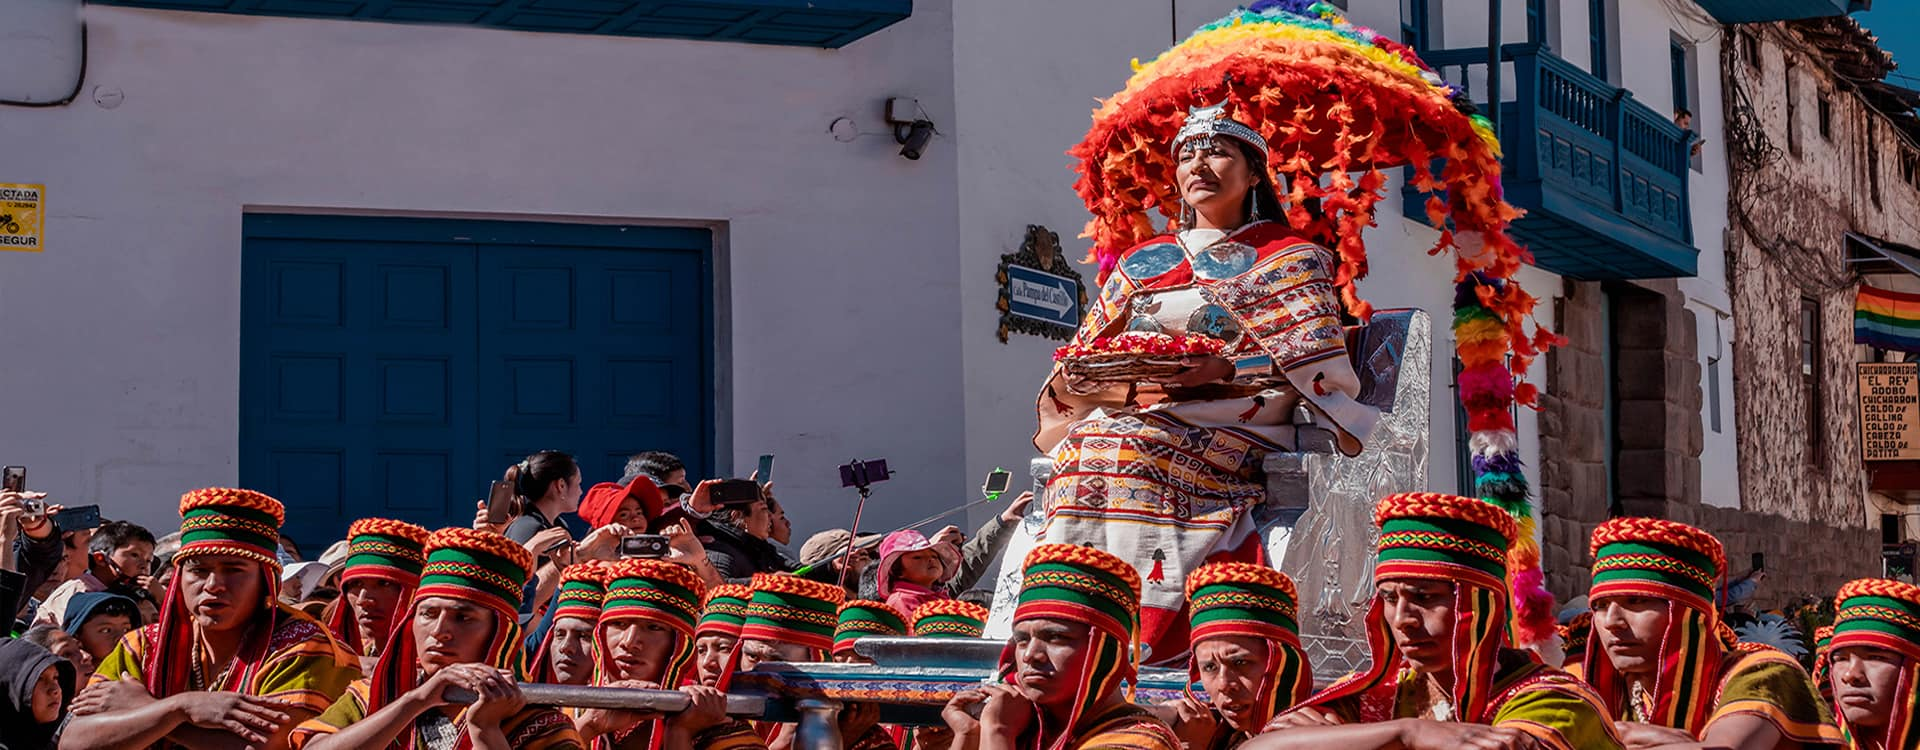 tours in cusco and intirraymi important event